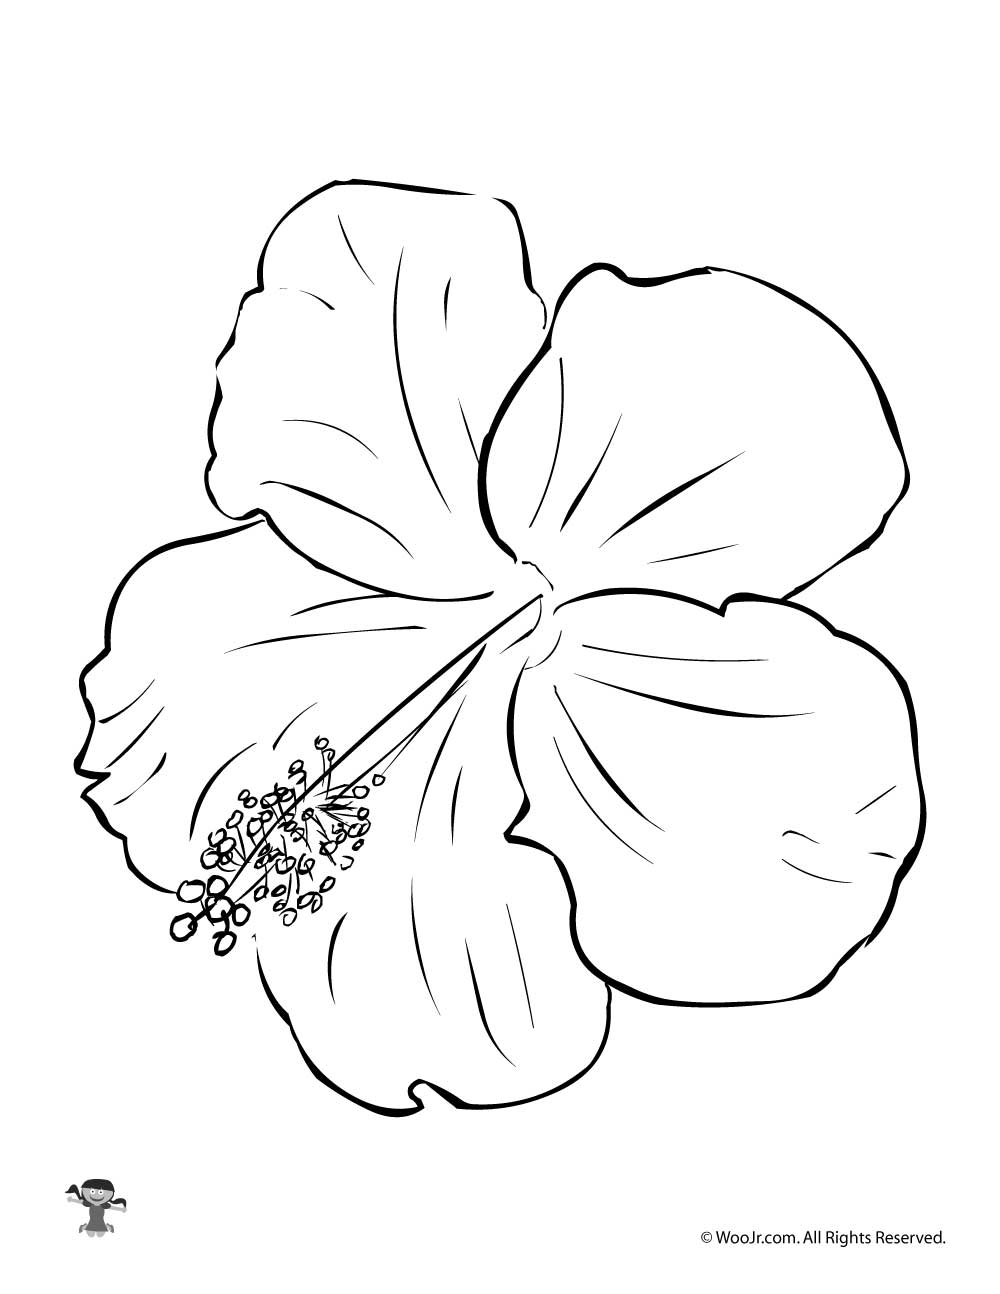 Hibiscus Flower Coloring Page | Woo! Jr. Kids Activities